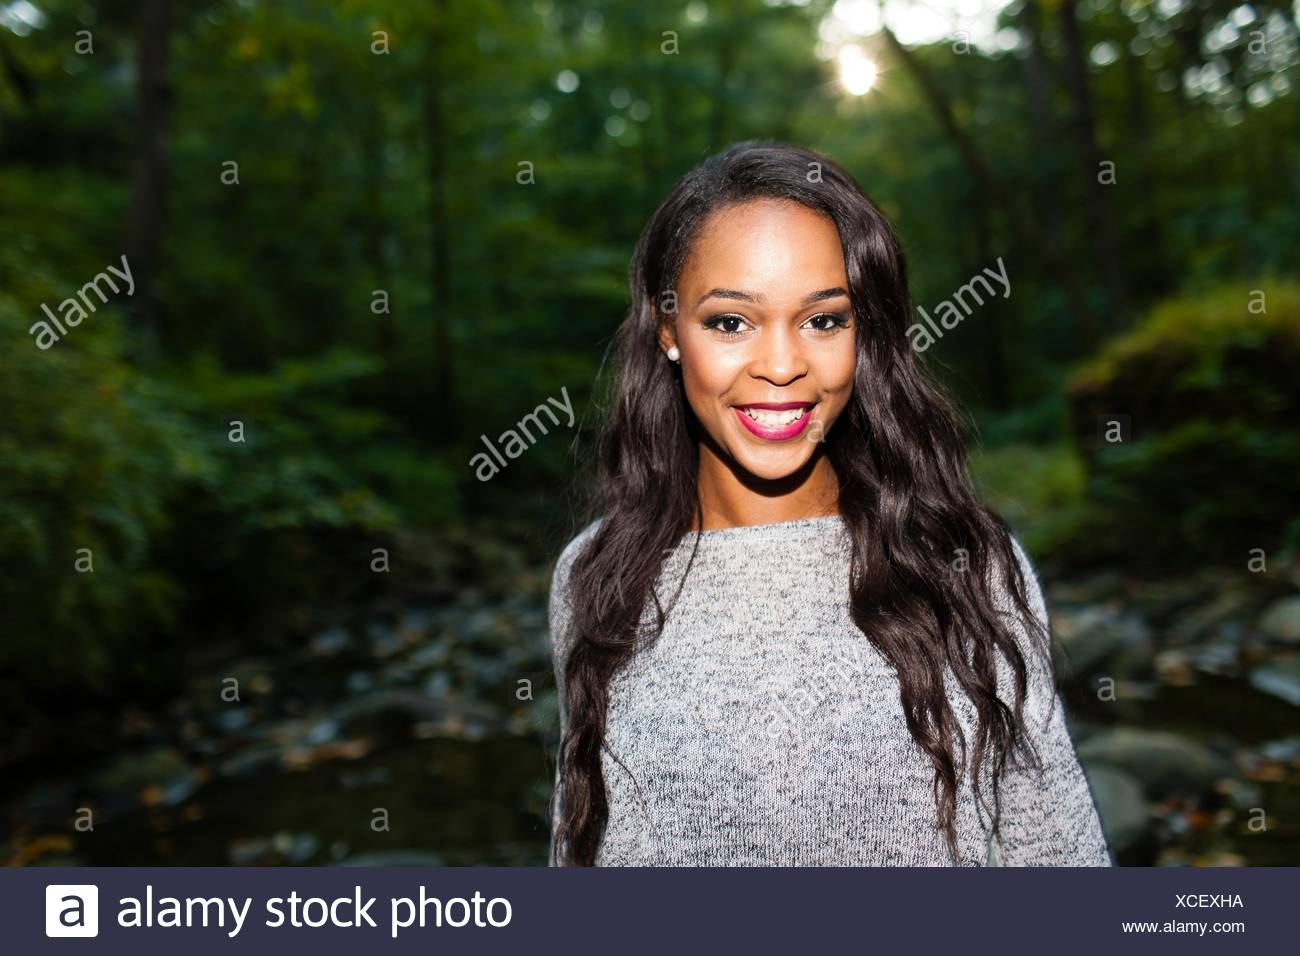 Portrait of happy young woman in darkened forest - Stock Image